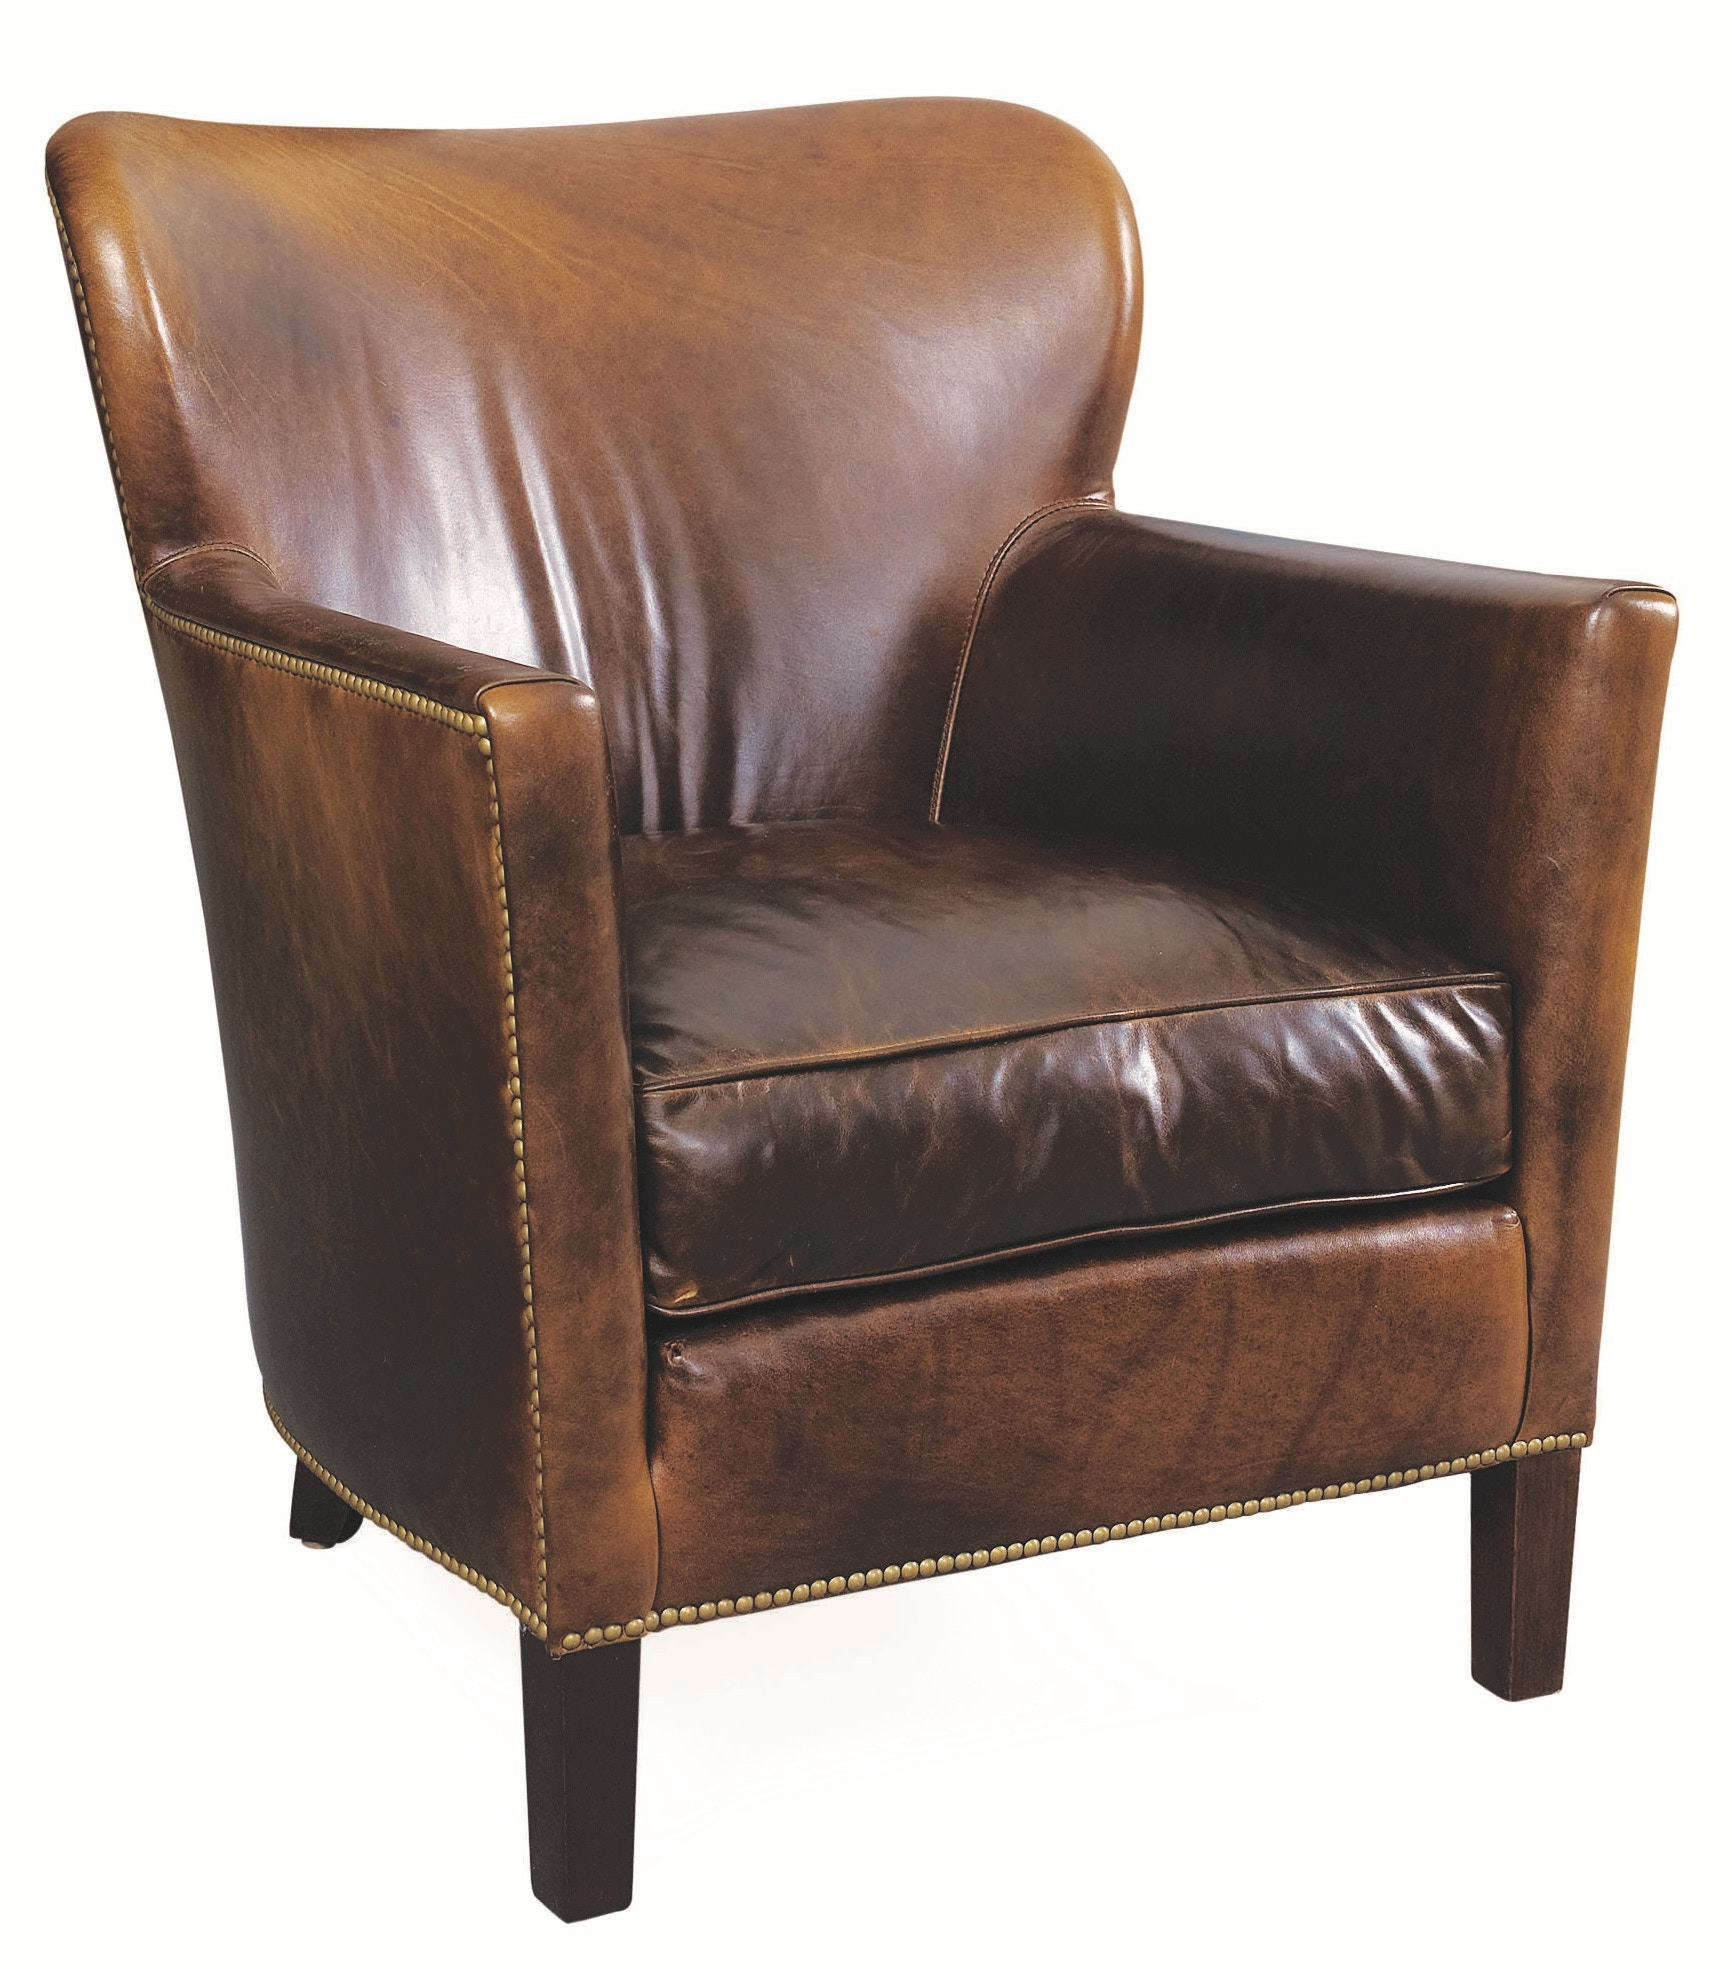 Lee Industries Leather Chair L1367 01